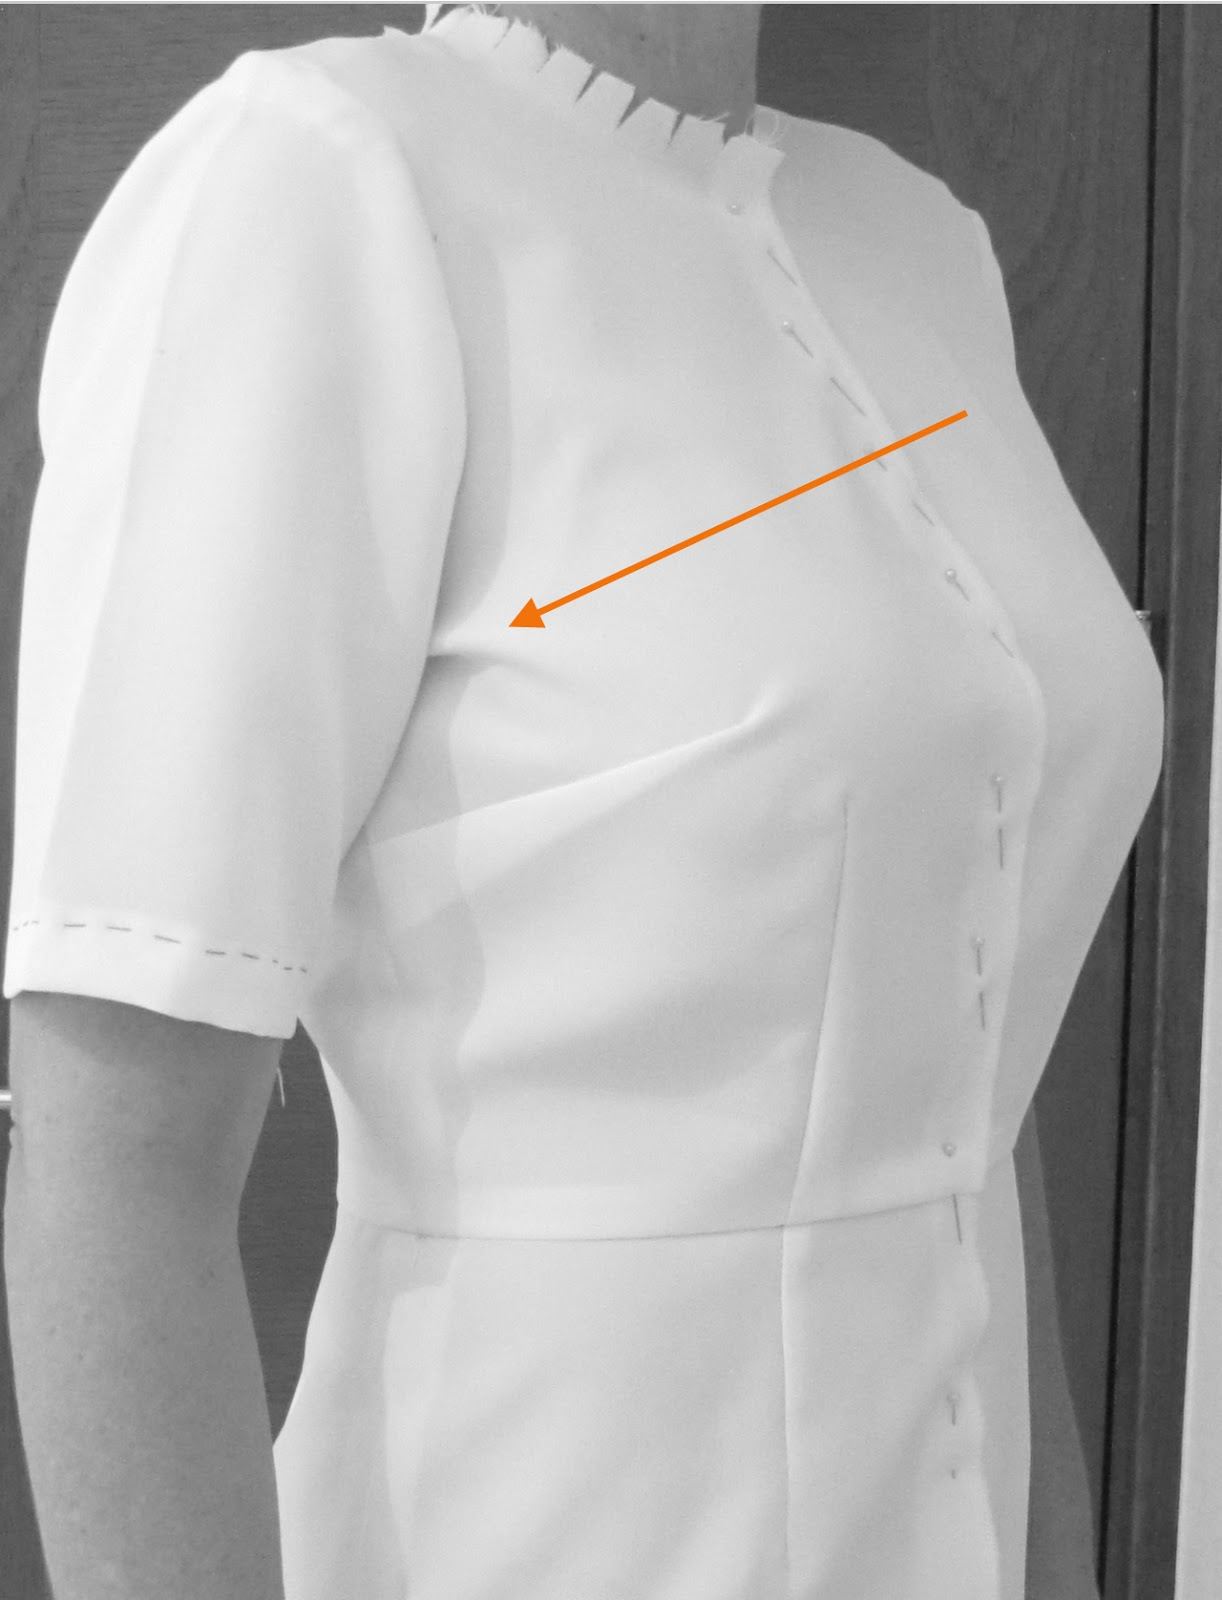 how to know if your armhole